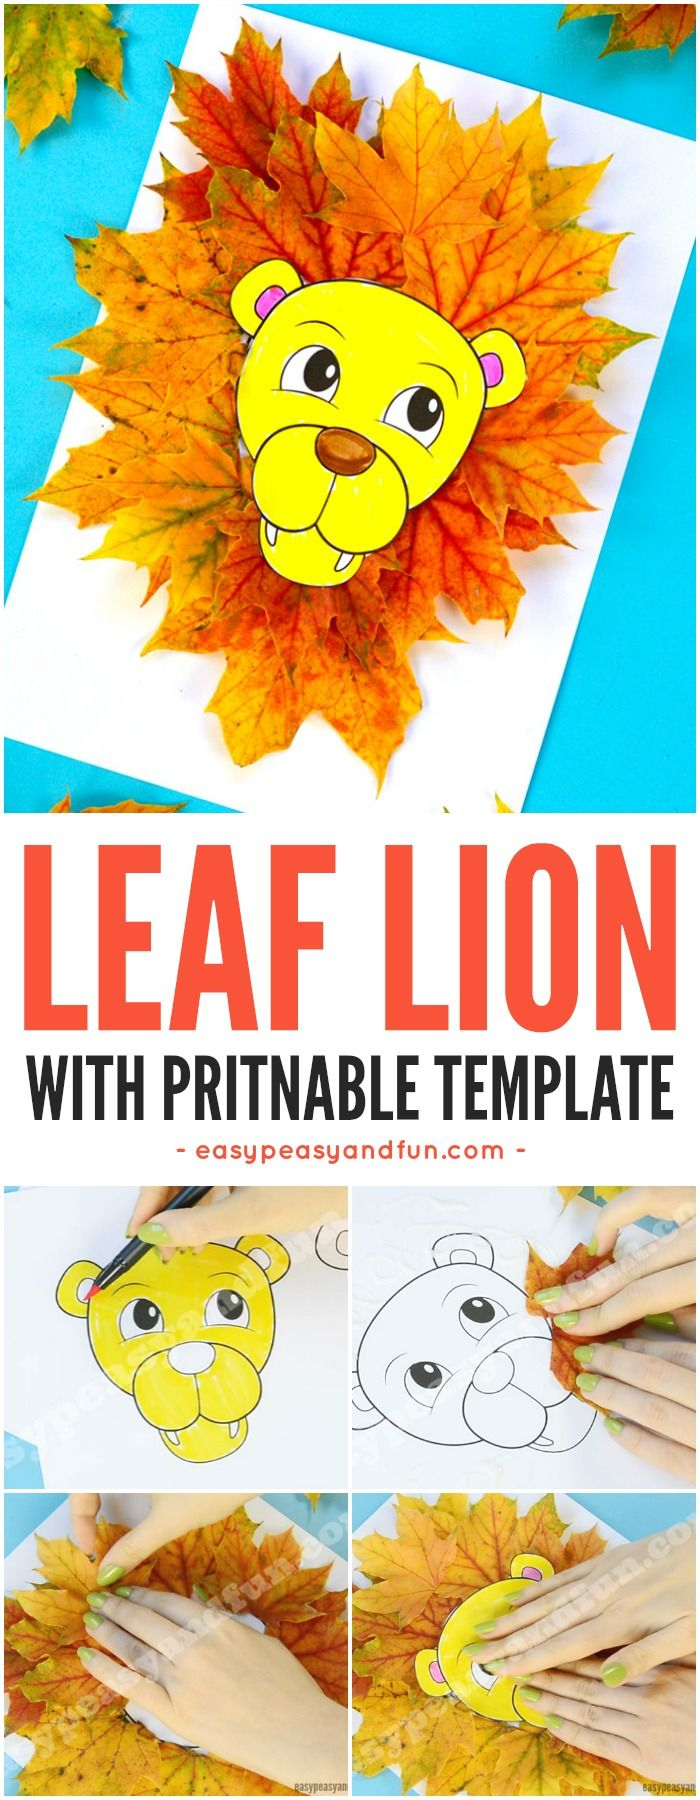 Lion Leaf Craft For Kids With Printable Template Fun Fall Activity In Classroom Or At Home